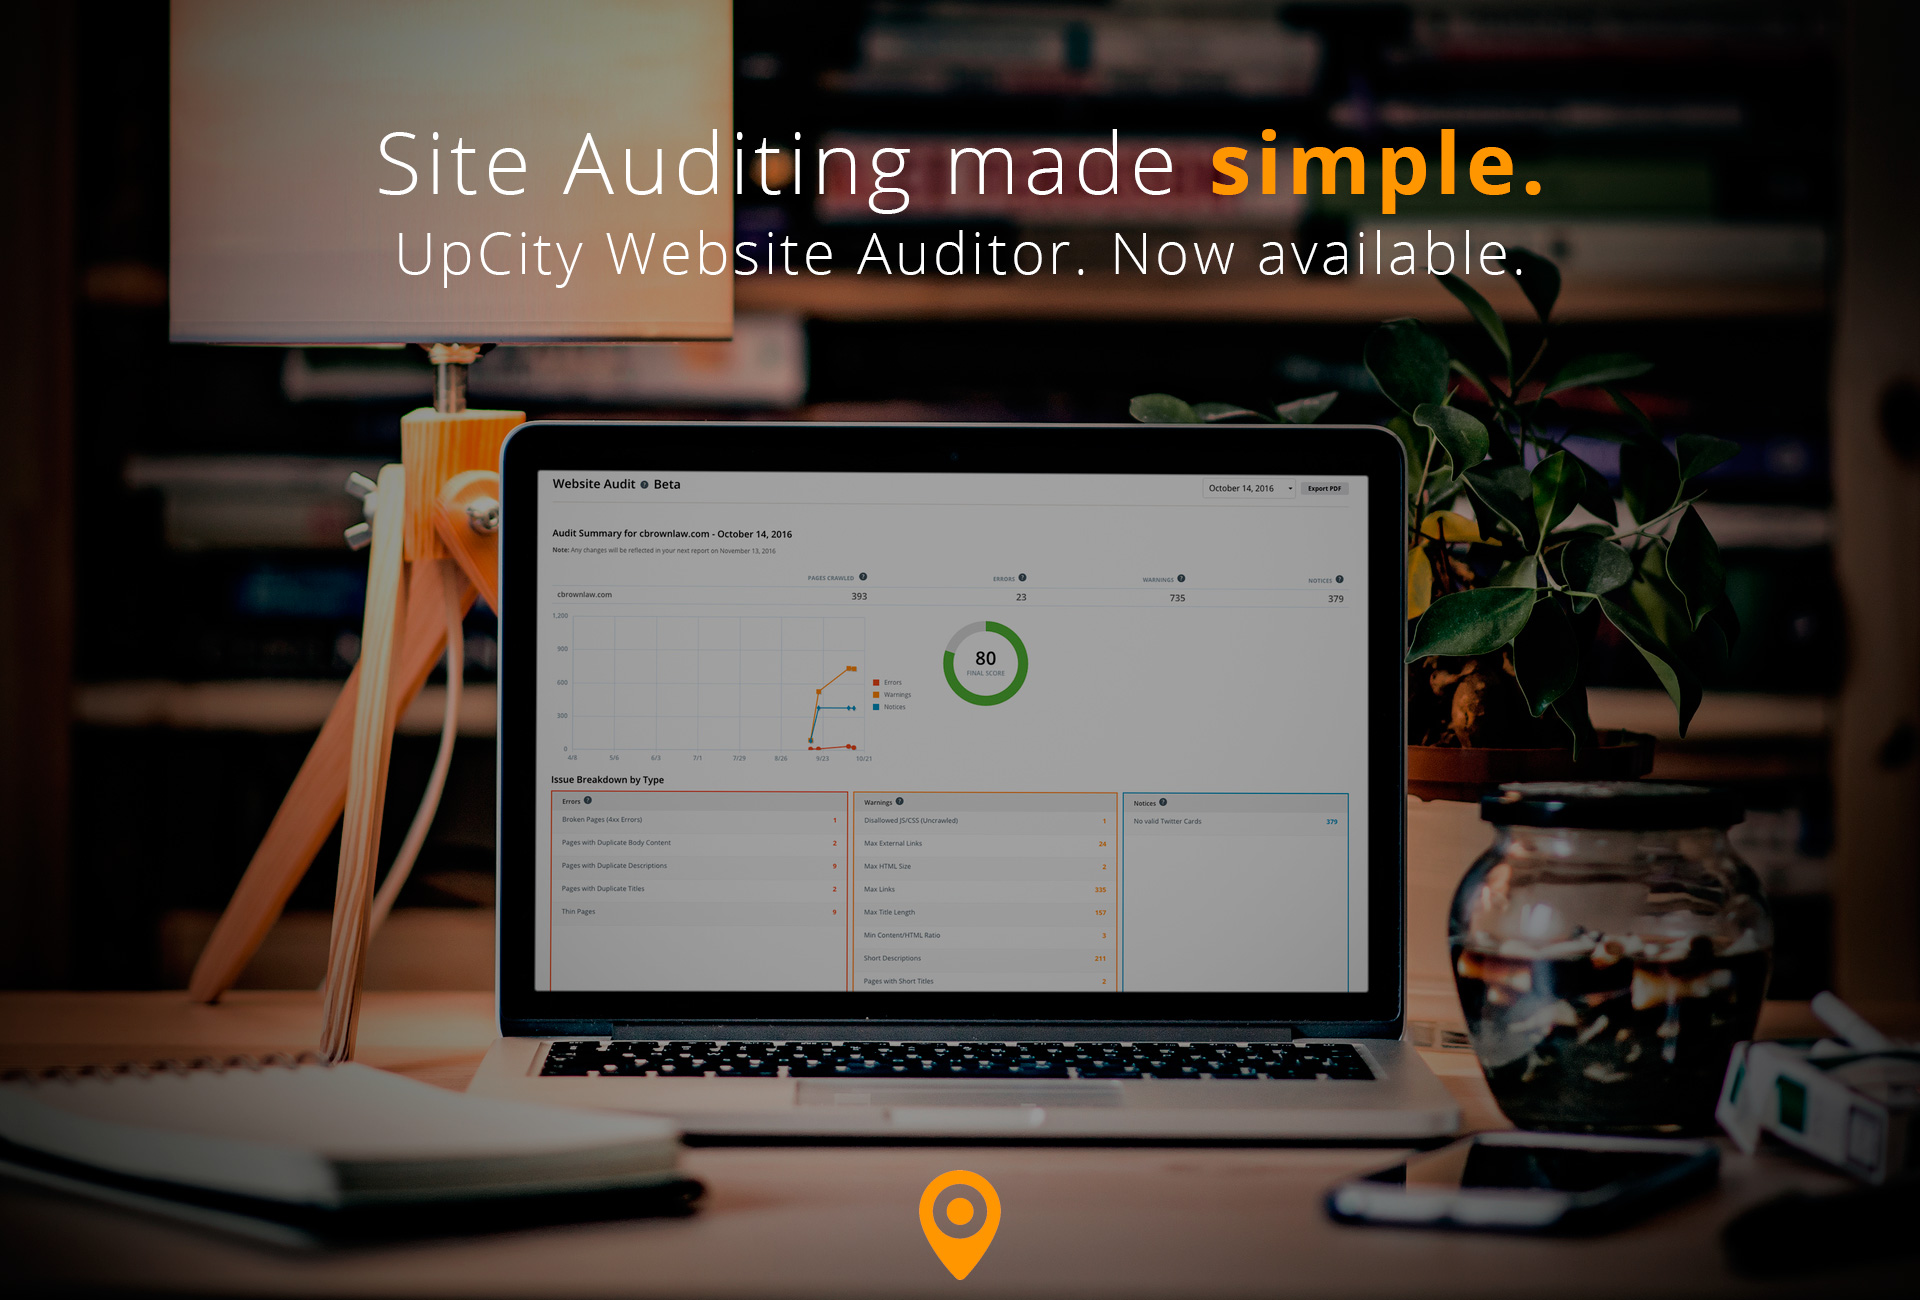 upcity-website-audit-banner